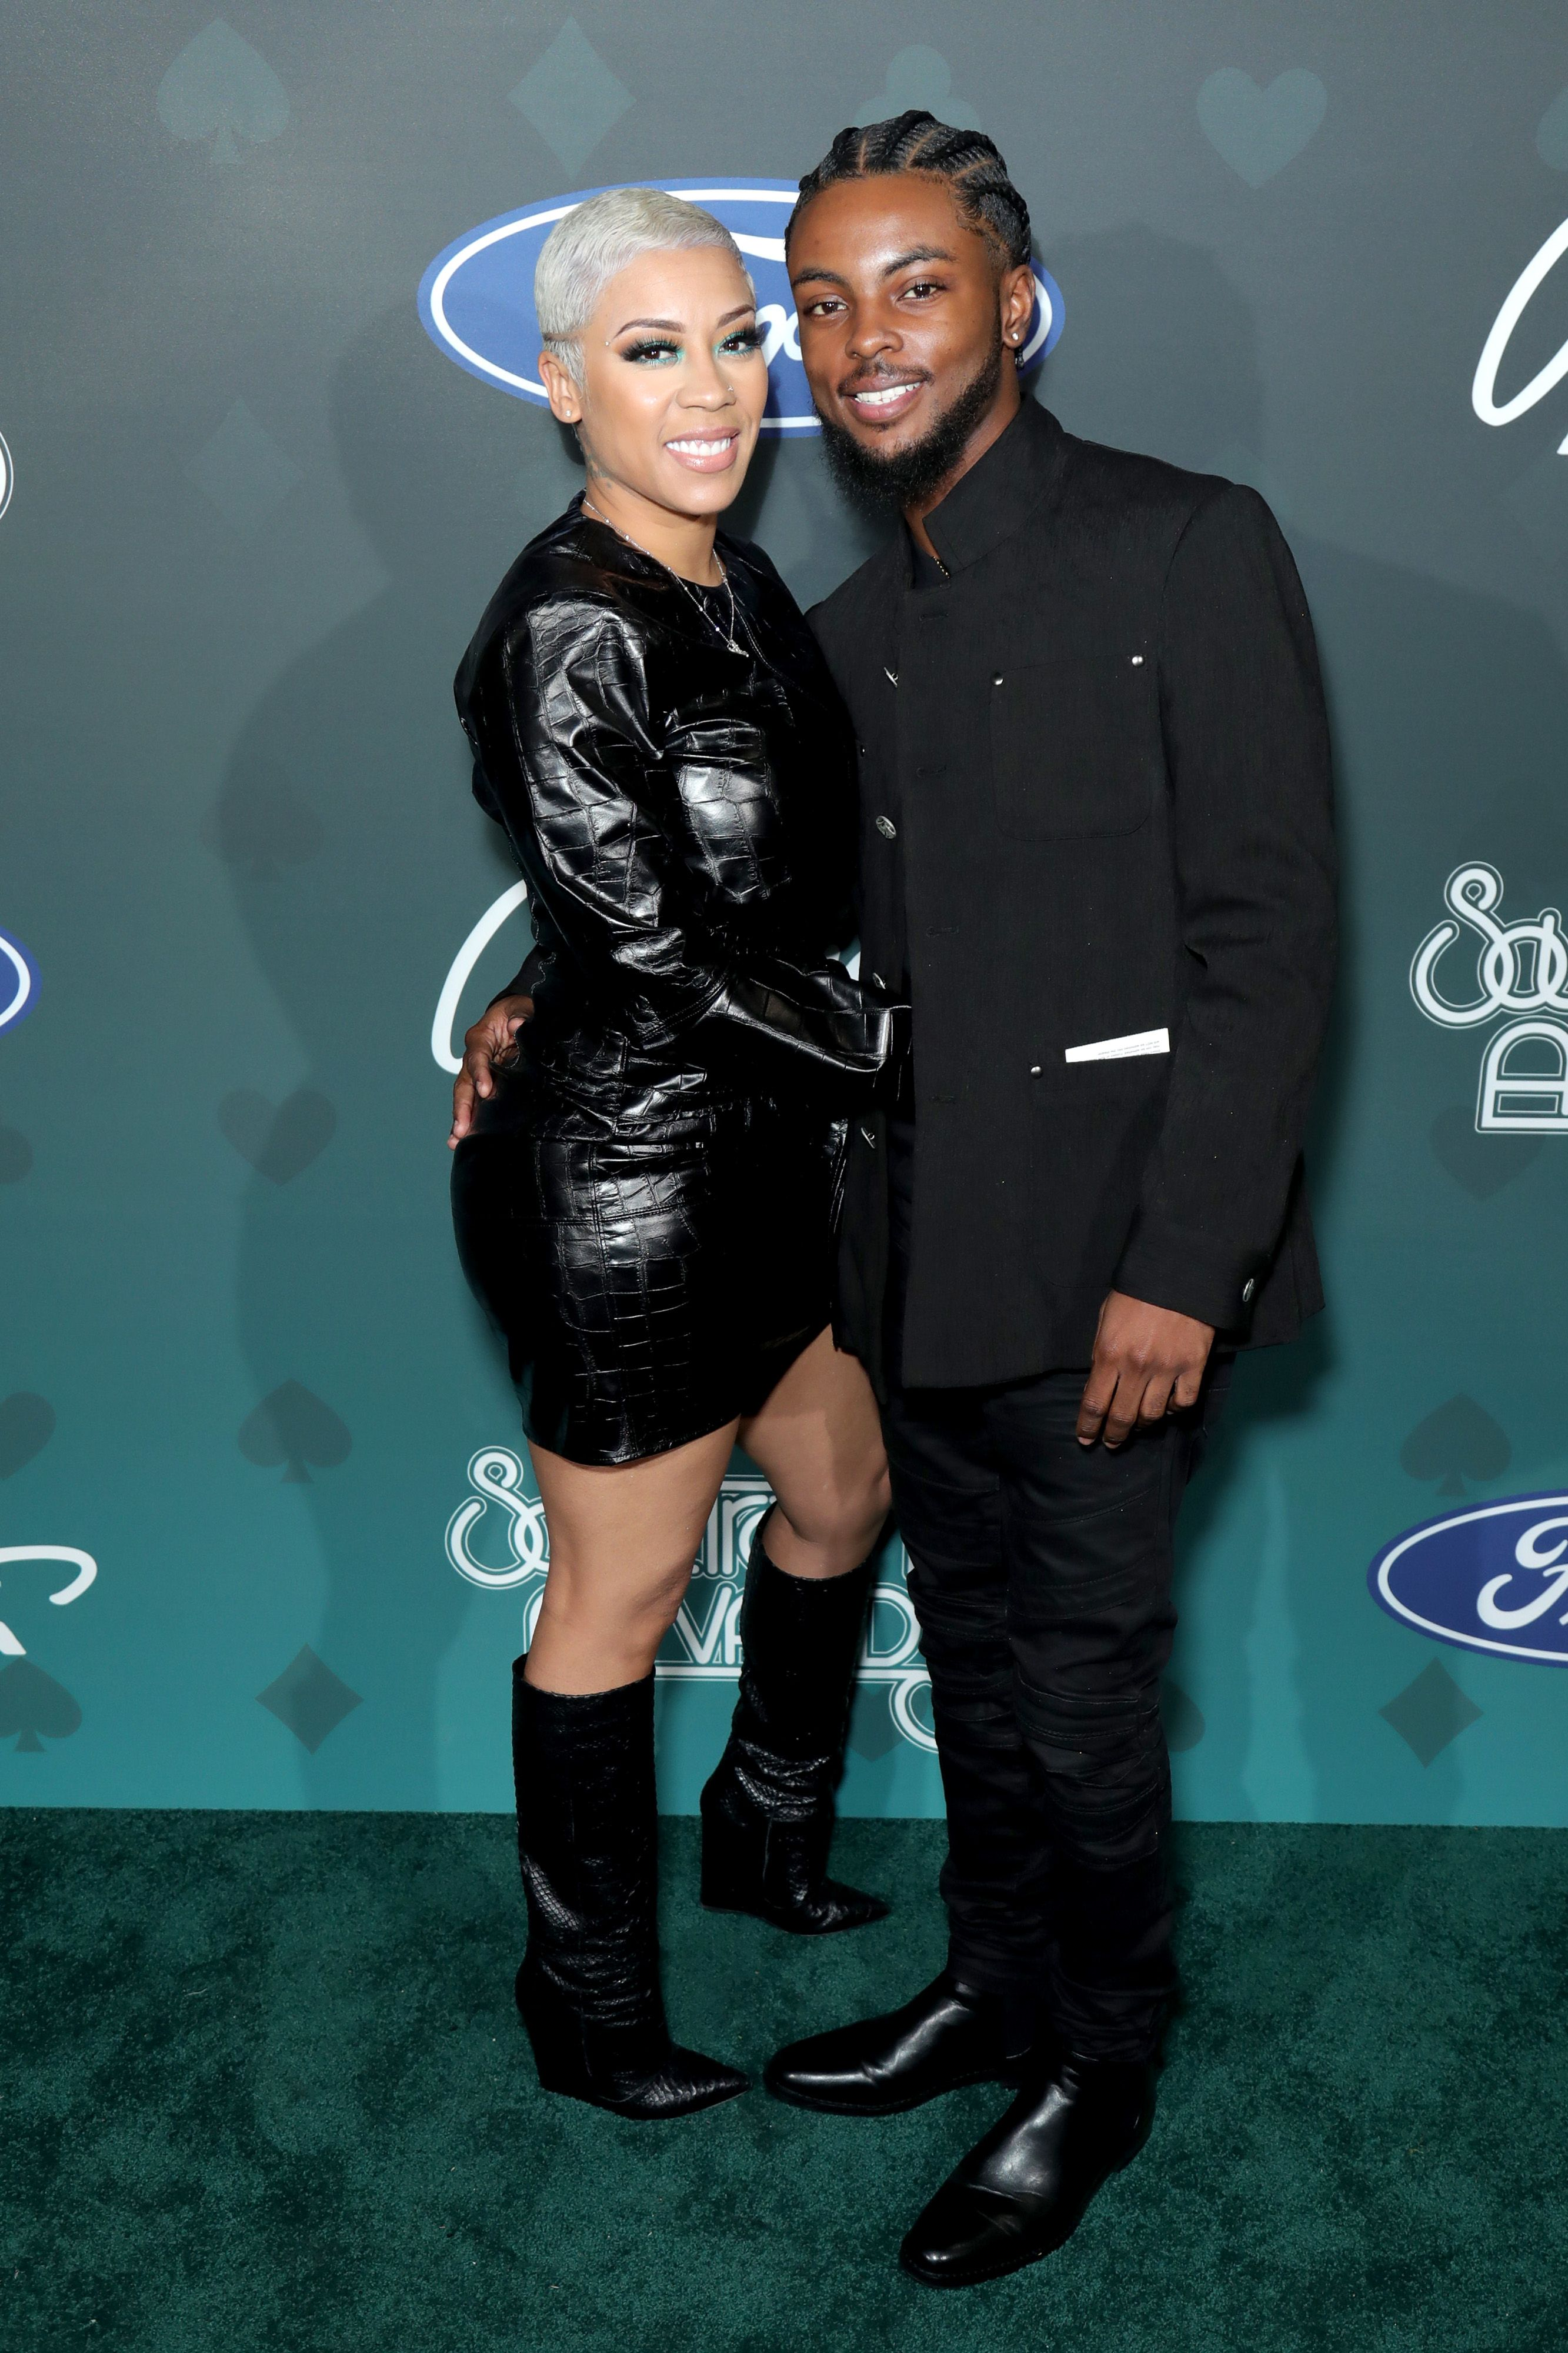 Keyshia Cole and Niko Khale pose backstage at the 2019 Soul Train Awards presented by BET at the Orleans Arena on November 17, 2019 | Photo: Getty images